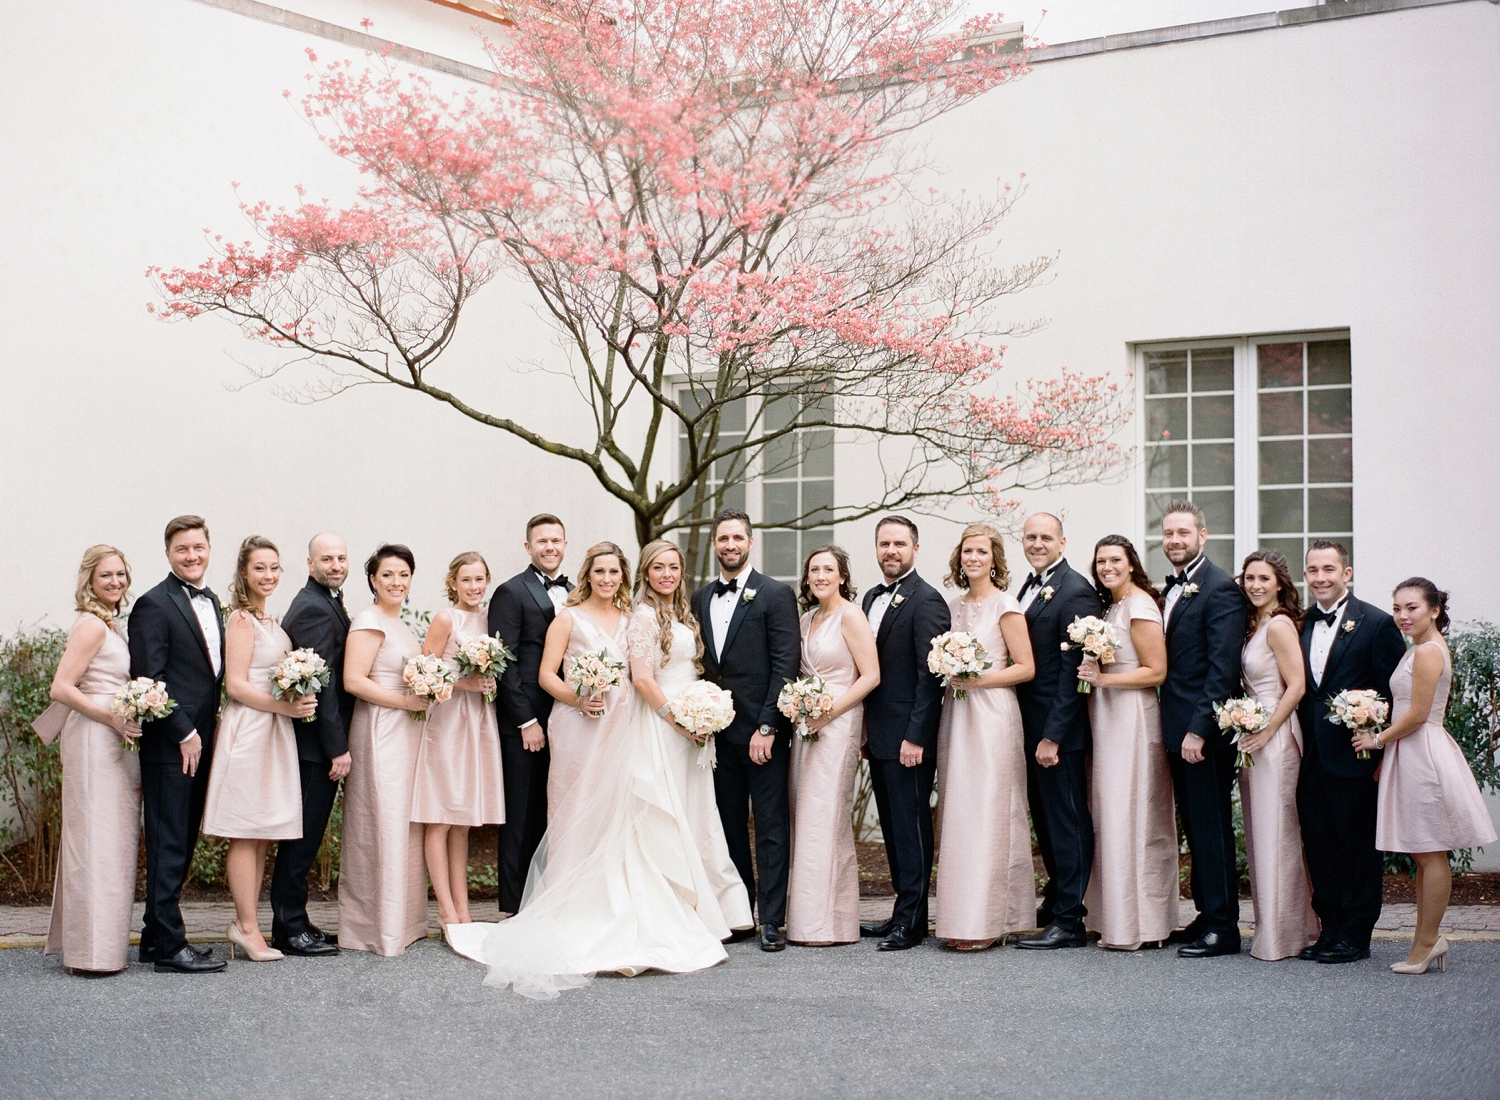 black tie wedding at congressional country club, dc